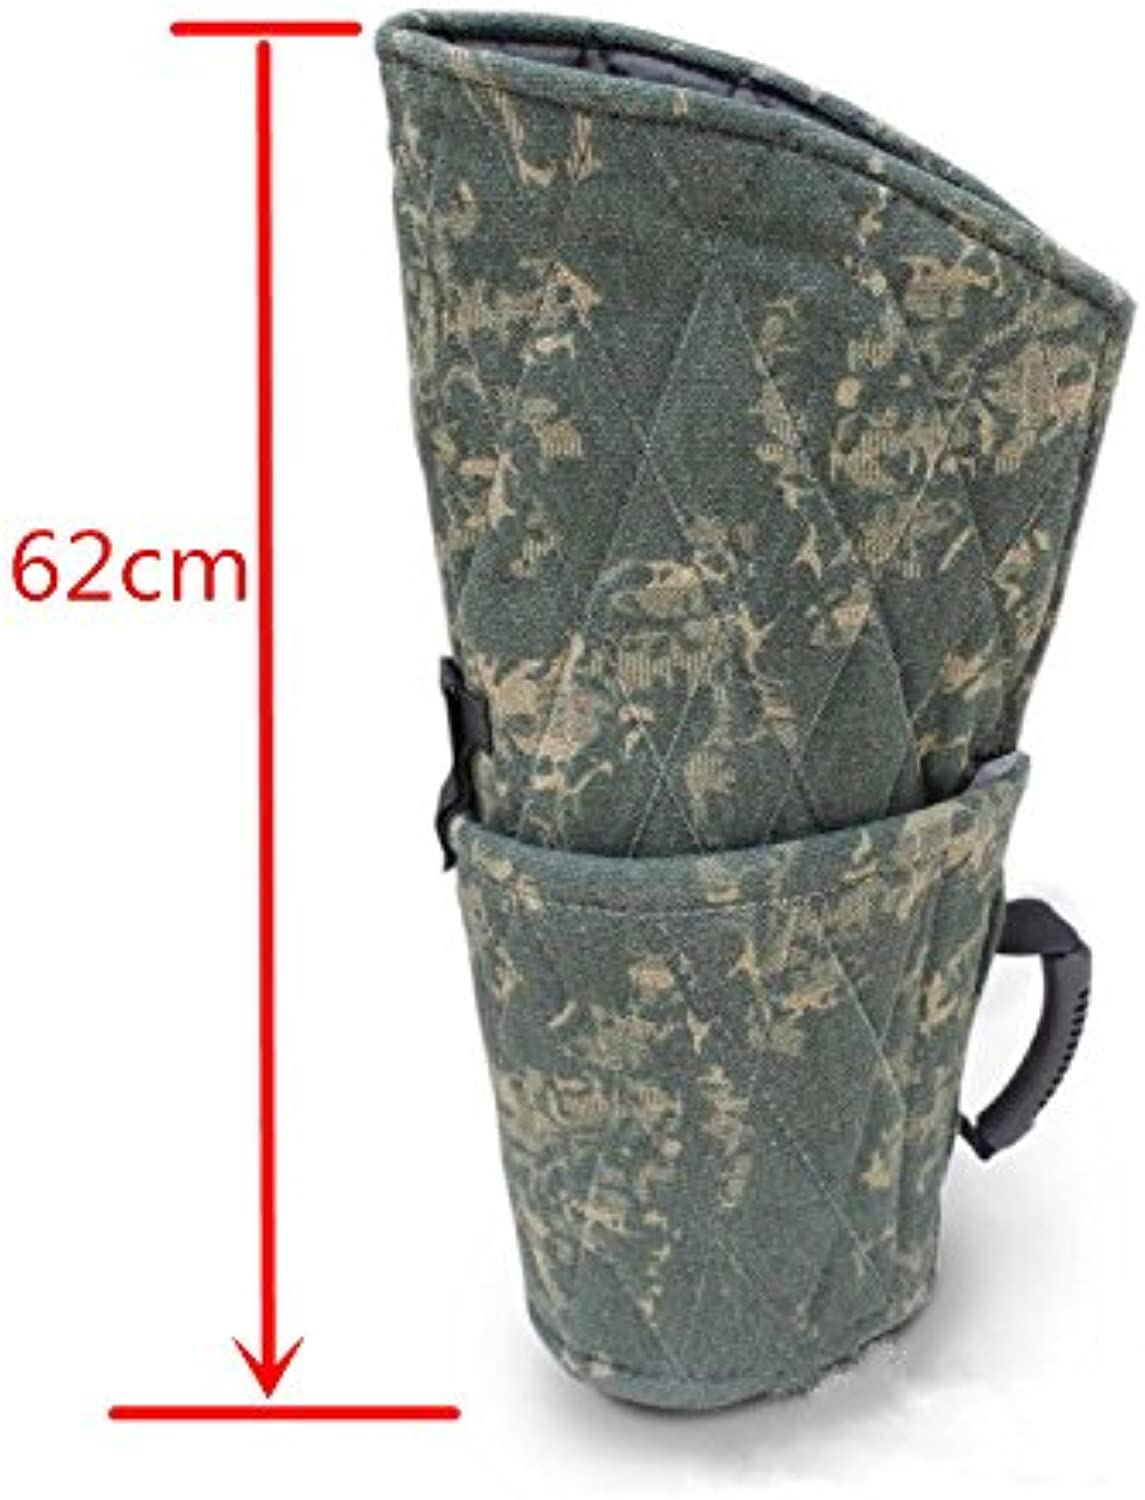 Lily&her friends Bite Sleeve Guard Dog Training for Young Dog Fit Both Arms, Pet Hard Outer Bite Sleeve (Camouflage)